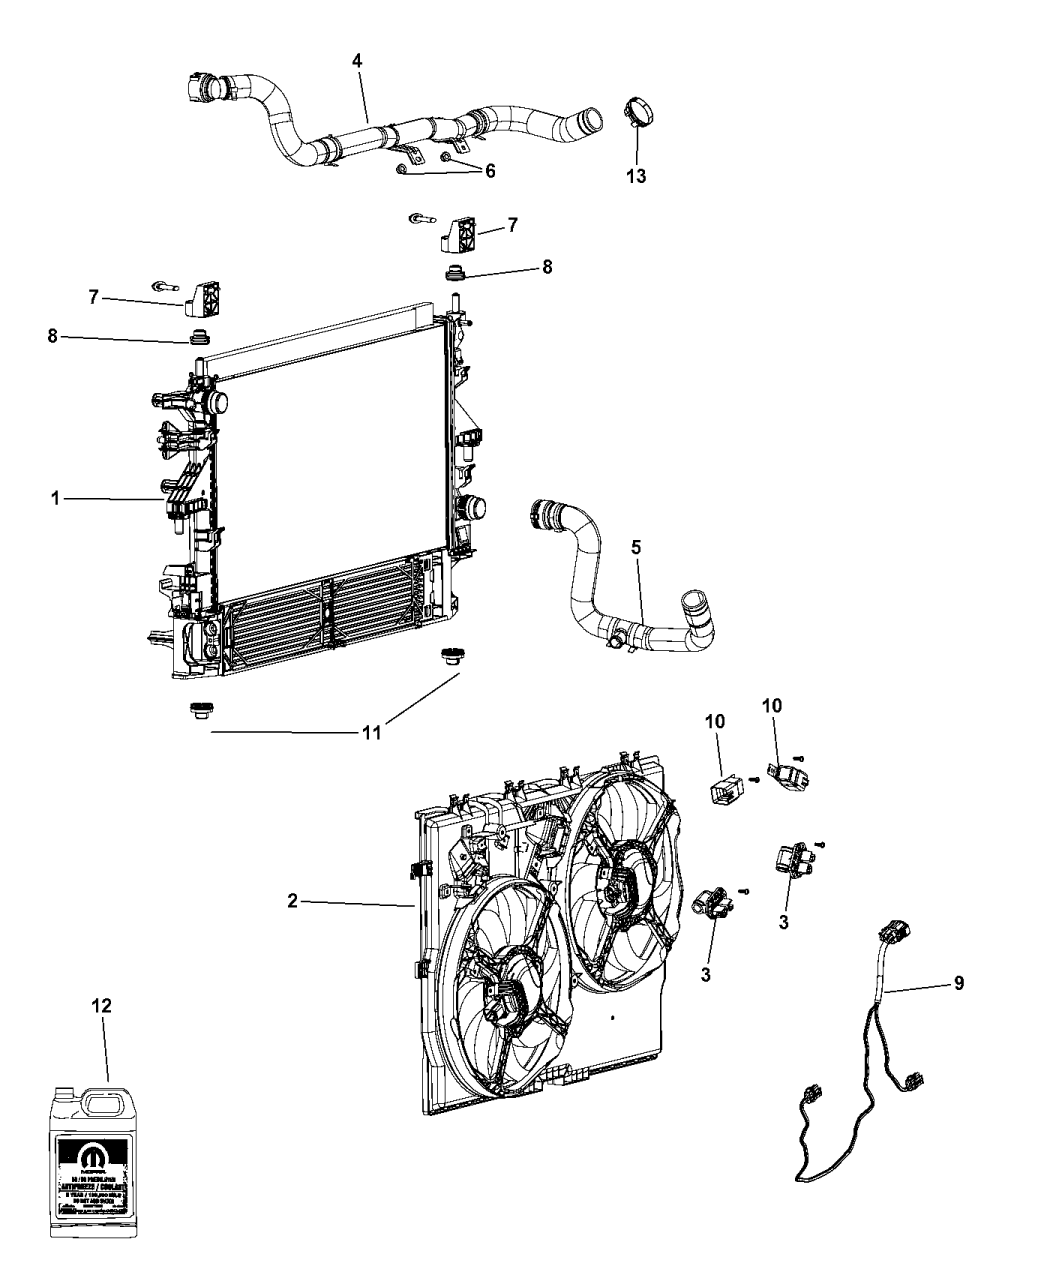 4727659ad Genuine Mopar Wiring Radiator Fan Engine Diagram 2015 Ram Promaster 3500 Related Parts